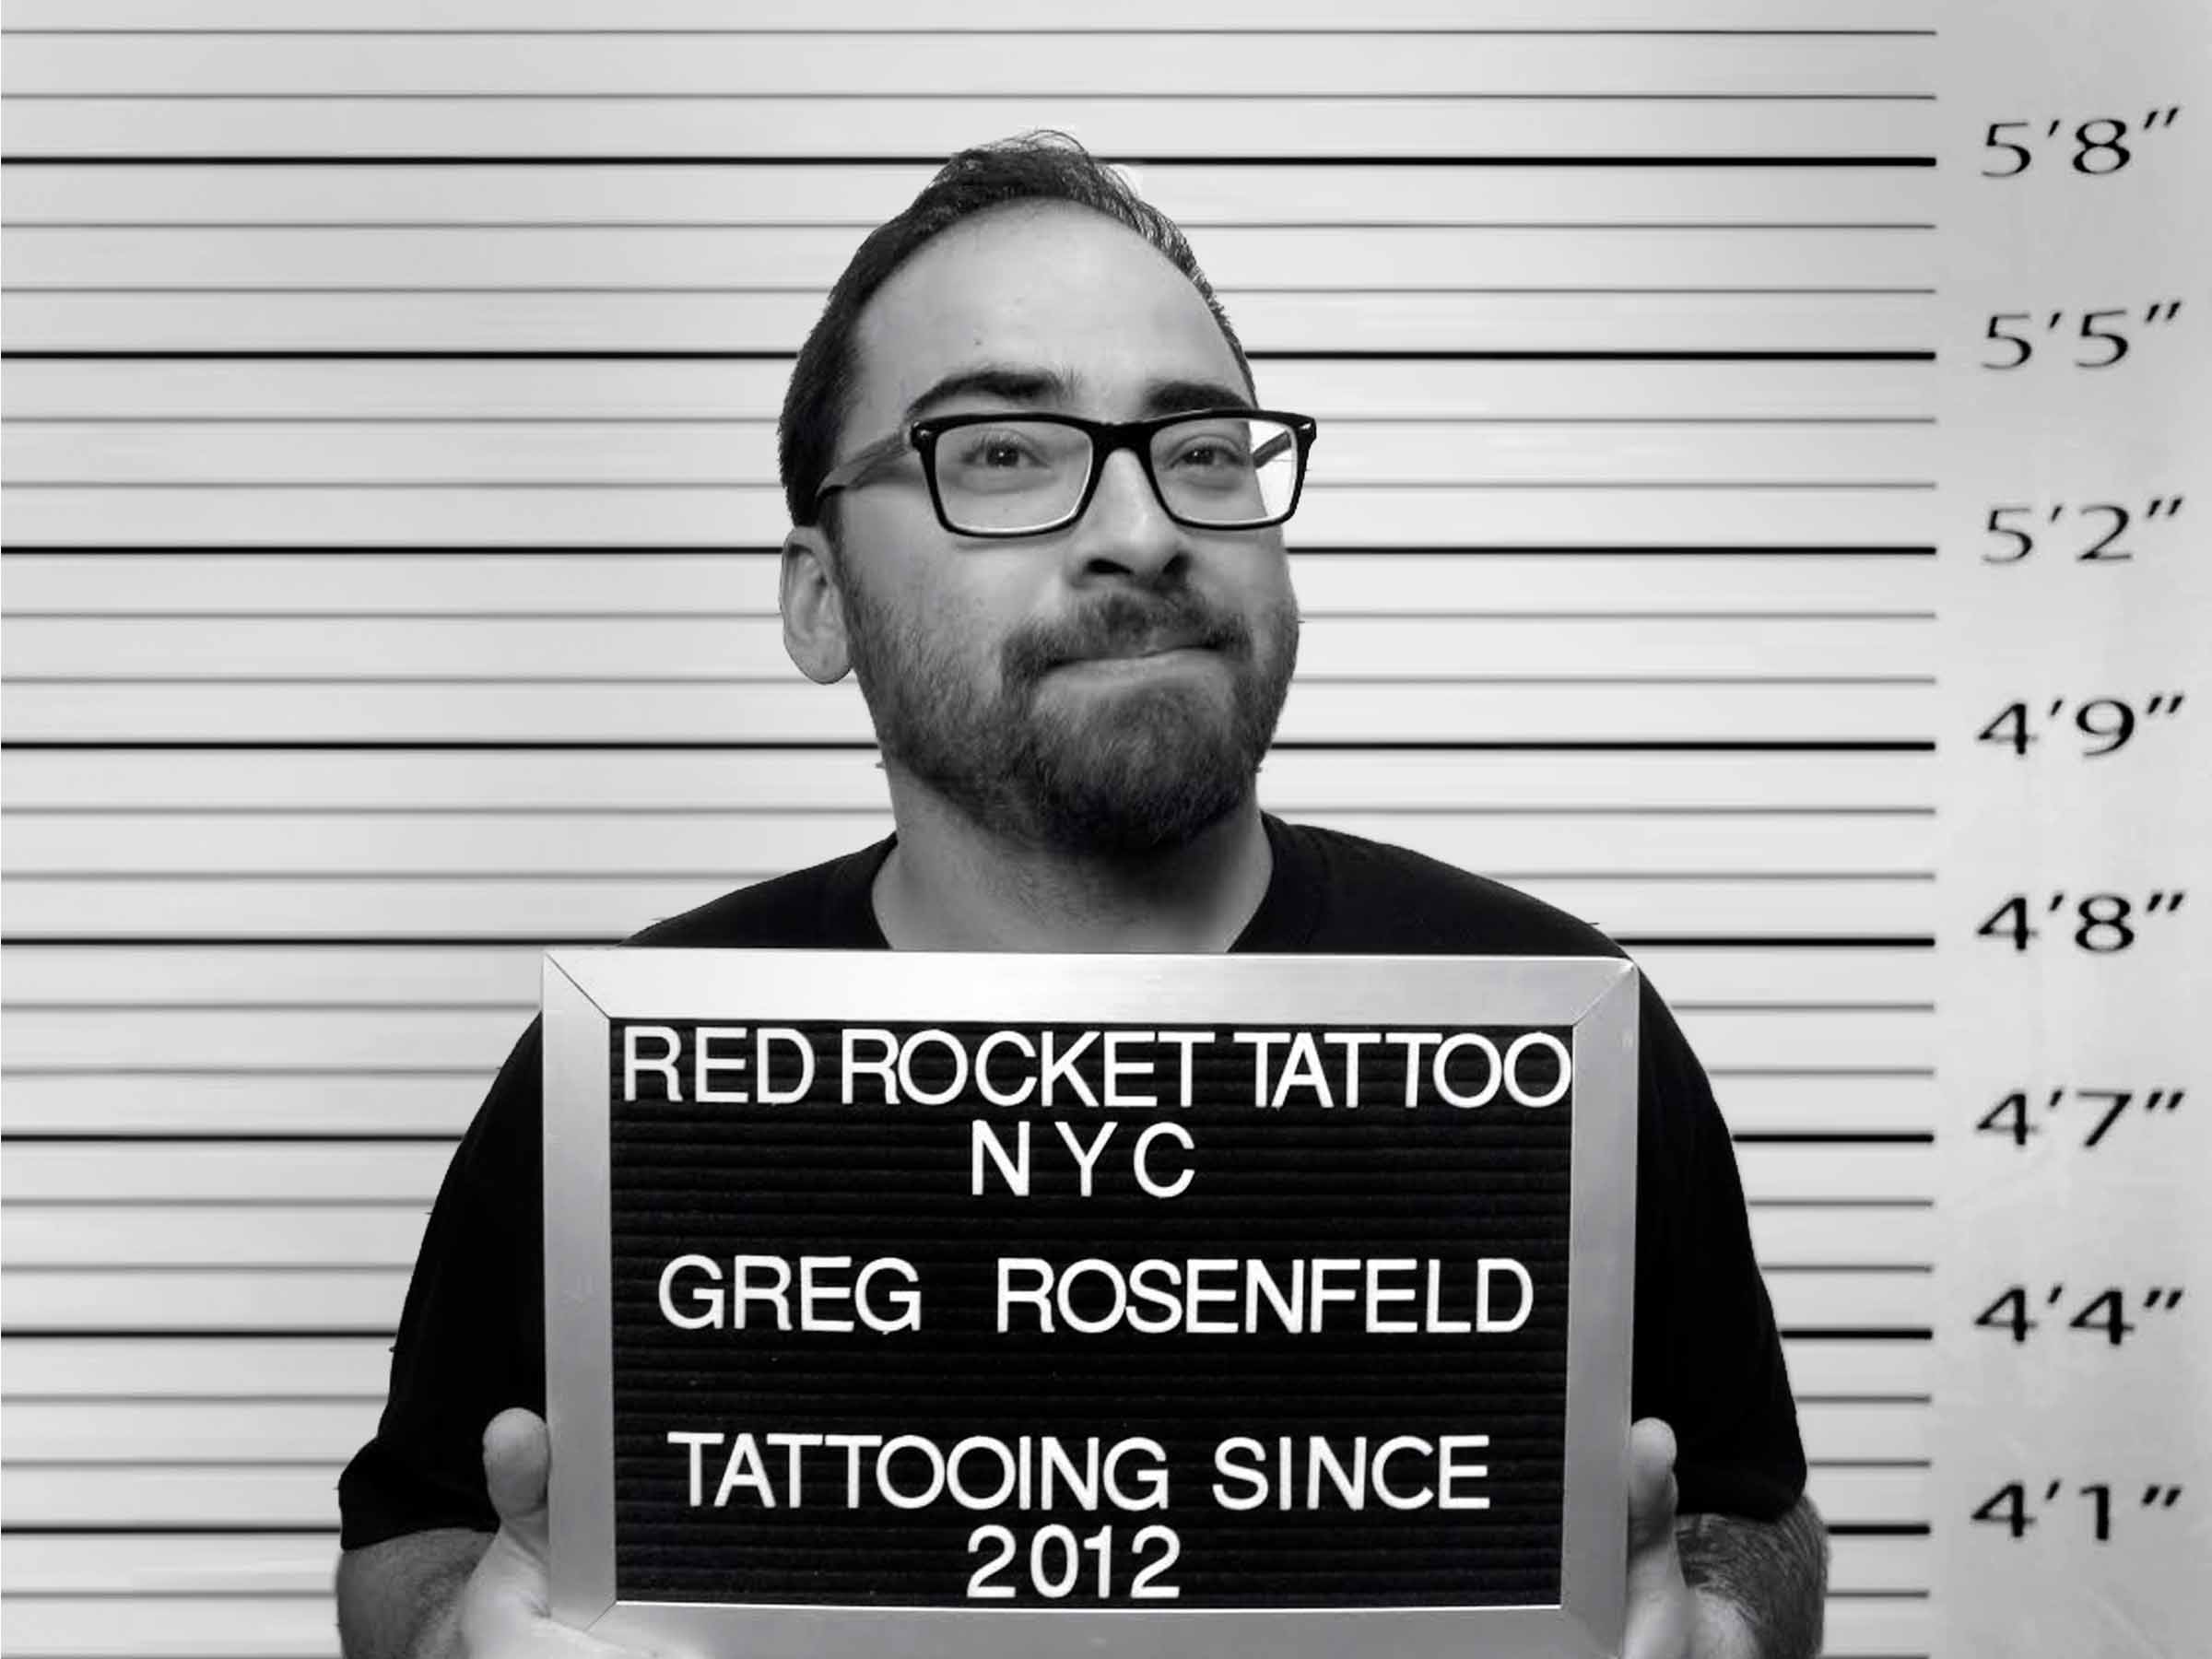 Red Rocket Tattoo Nyc High Quality Tattoos In New York City Since 1998